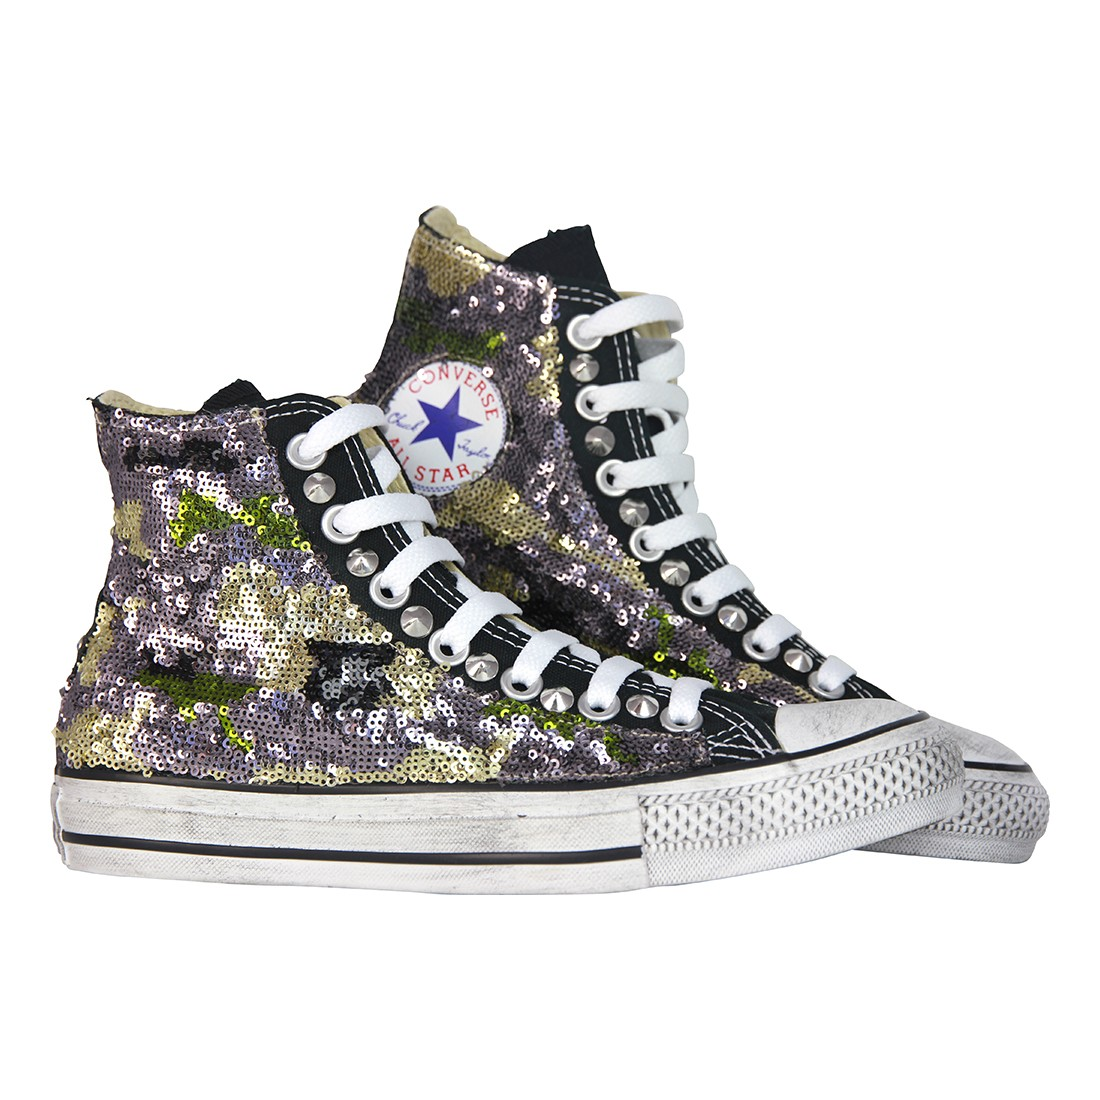 converse nere personalizzate con paillettes. Black Bedroom Furniture Sets. Home Design Ideas